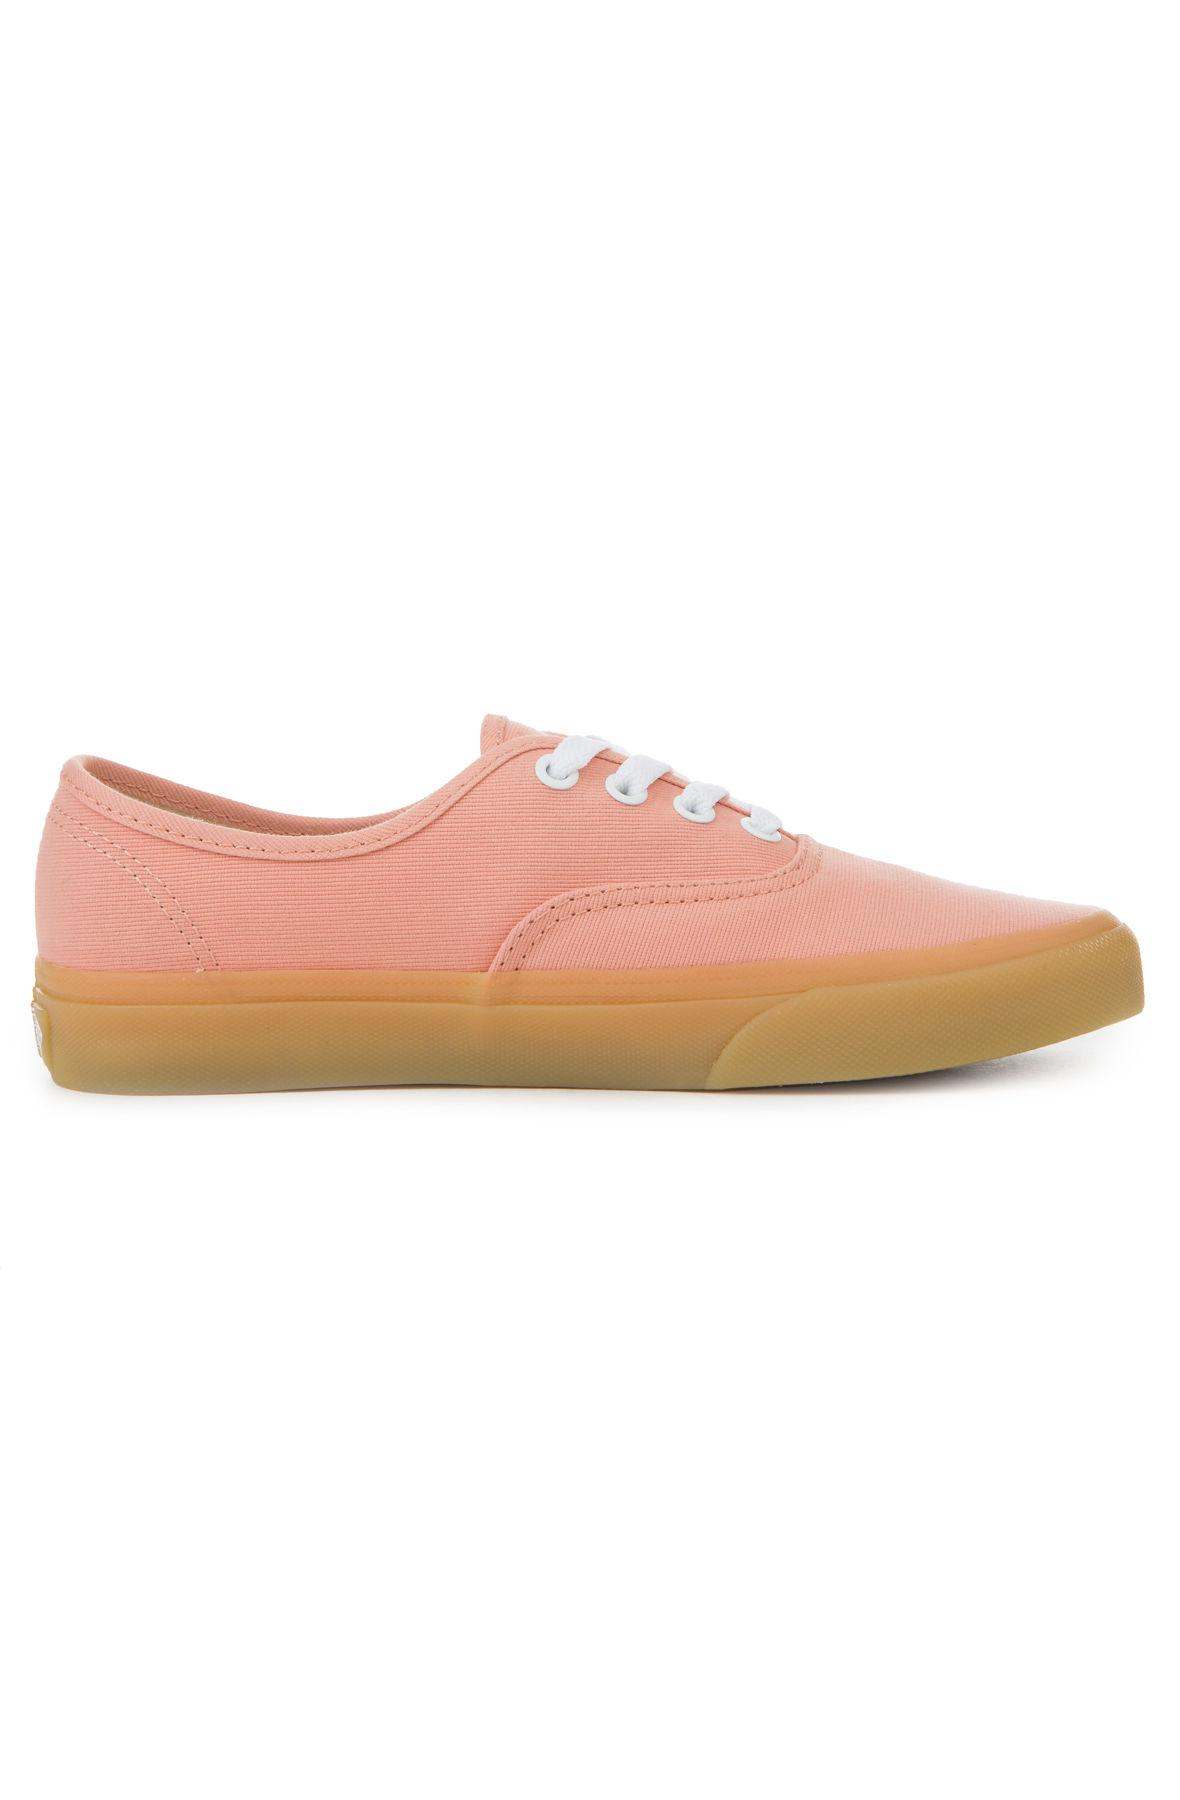 dd9067f3c3 Lyst - Vans The Women s Authentic In Muted Clay And Gum in Pink